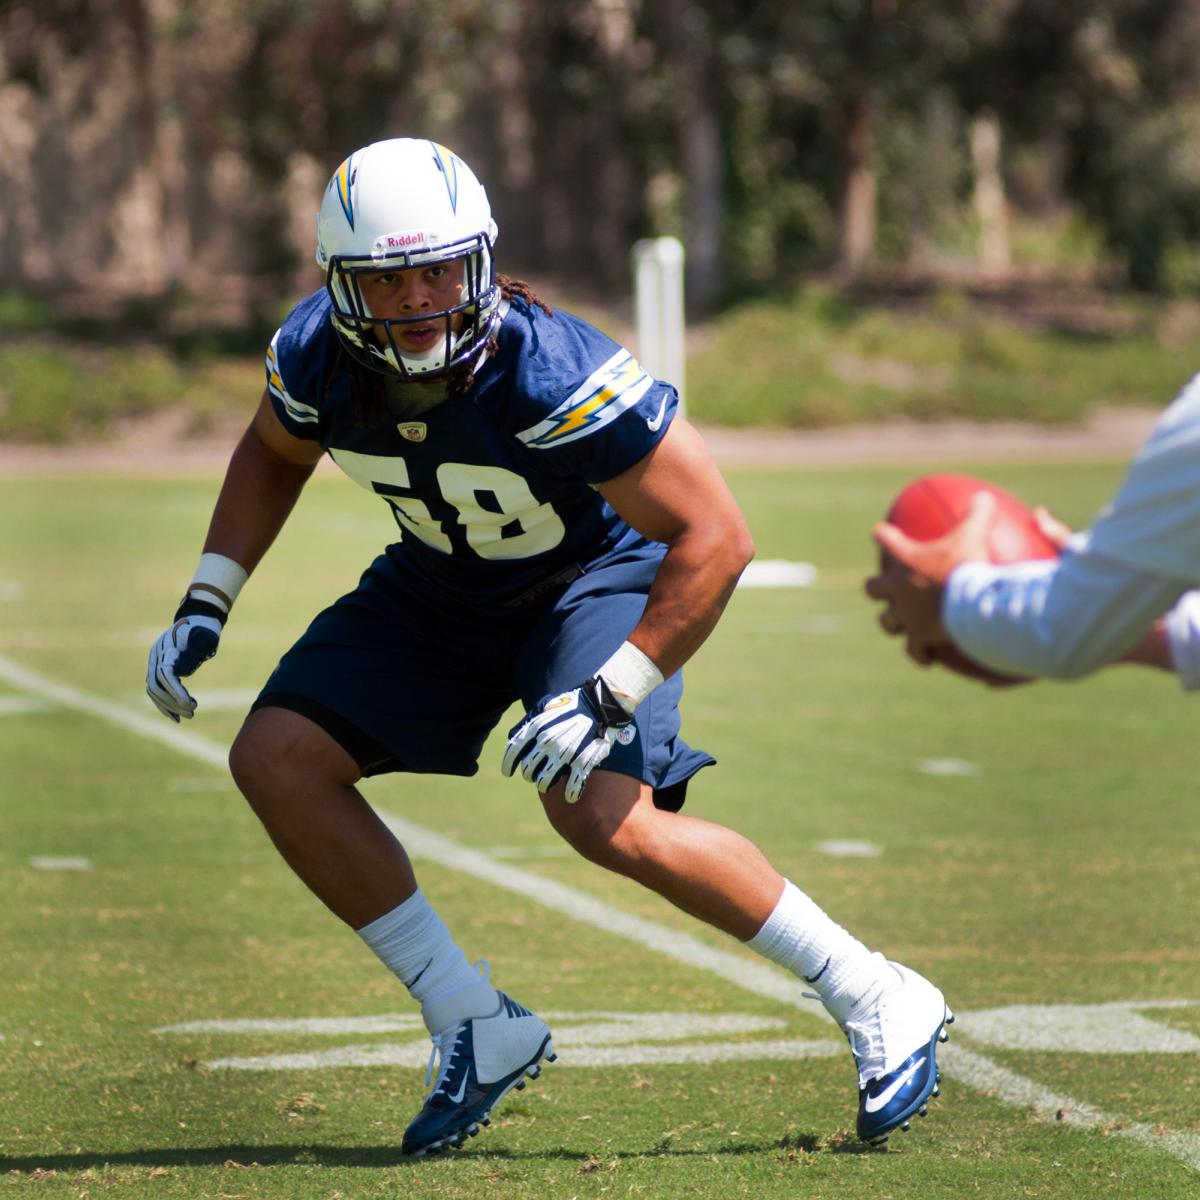 San Diego Chargers Former Playerssan Diego Chargers Forum: Rookie, Undrafted Free Agent Watch For San Diego Chargers